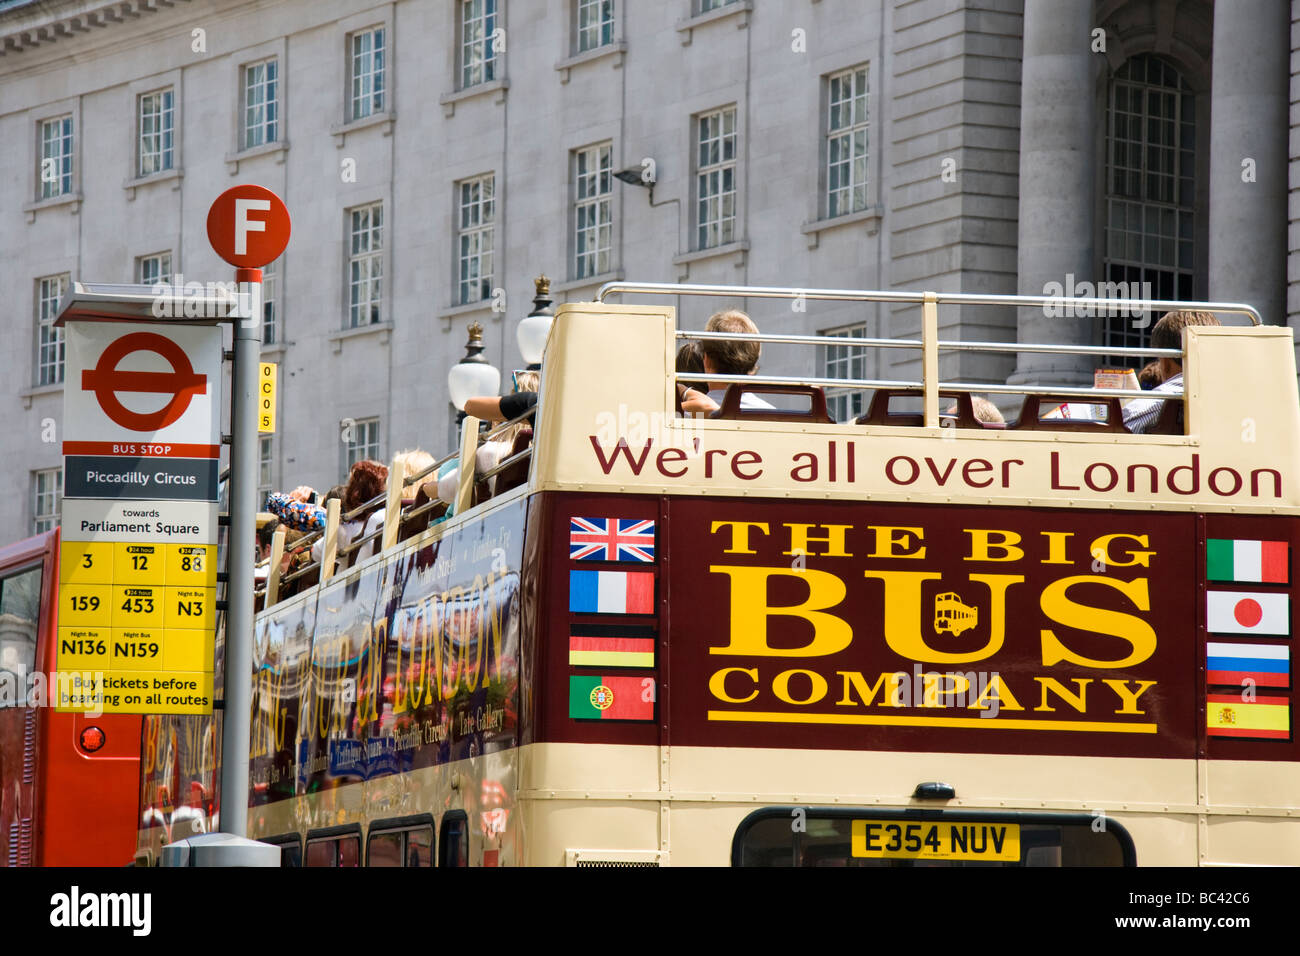 Die Big Bus Company öffnen Regent Street London England UK-Top-bus Stockbild